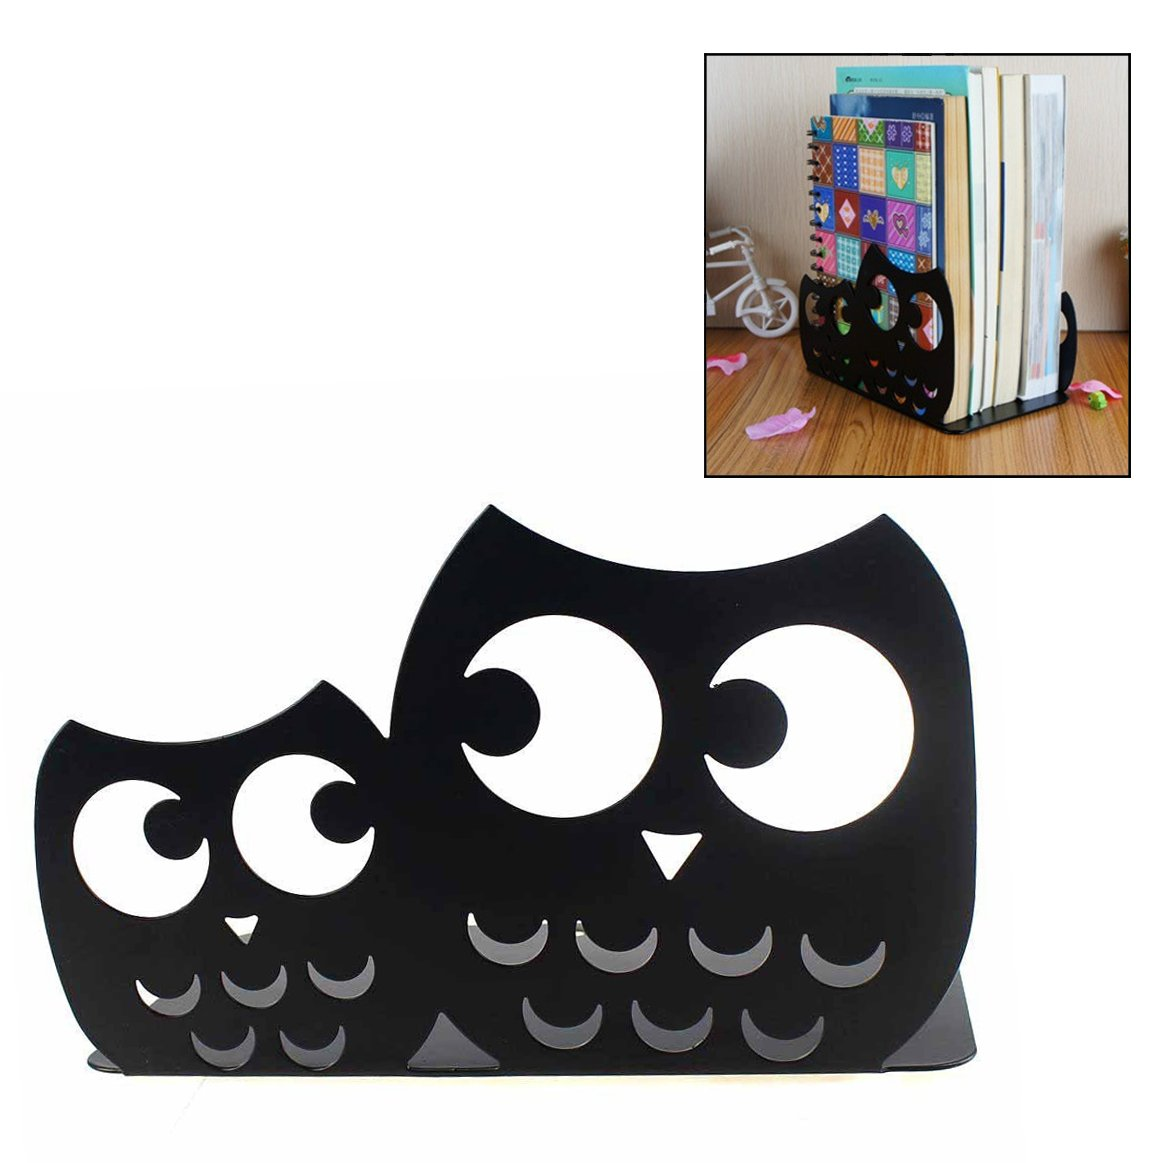 OFKP One Pair Cute Owl School Office Home Study Metal Bookends For Decoration Gift (Black)